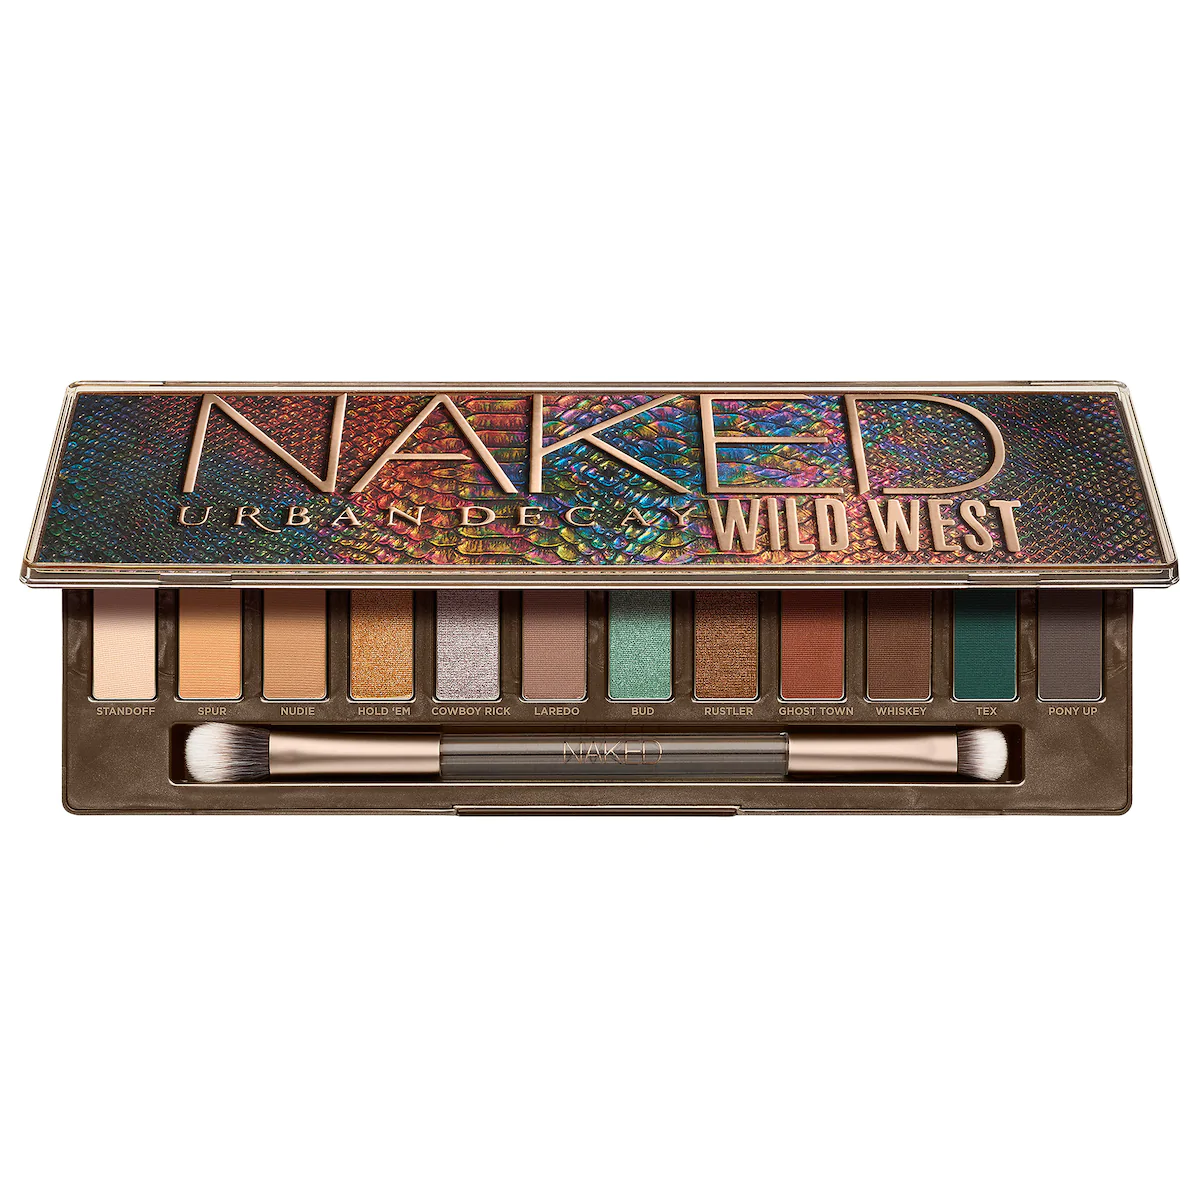 Urban Decay Naked Wild West Eyeshadow Palette Reveal!